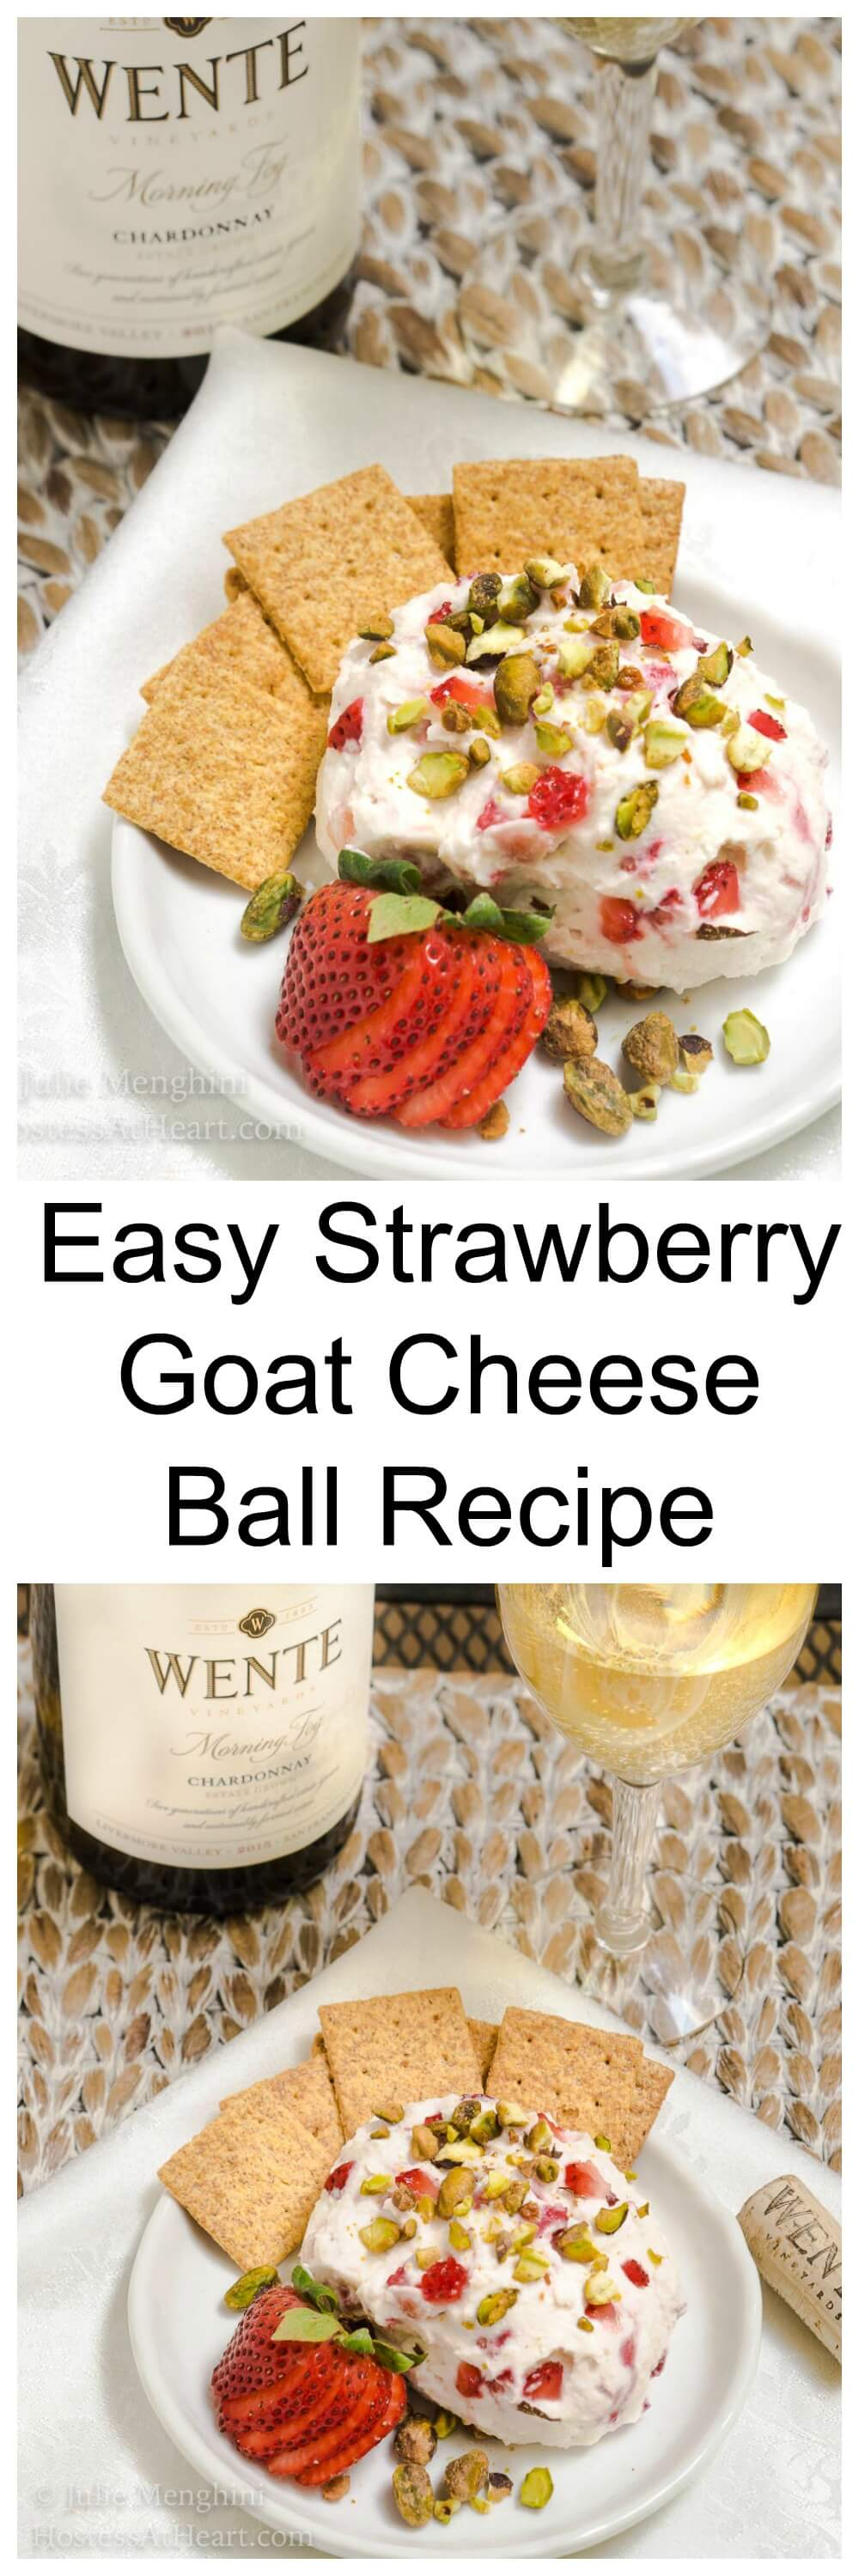 Msg 4 21+ Wente Chardonnay is one of our favorite wines!  This year I'll be serving this great Wente Chardonnay with this Easy Strawberry Goat Cheese Ball!  #ad